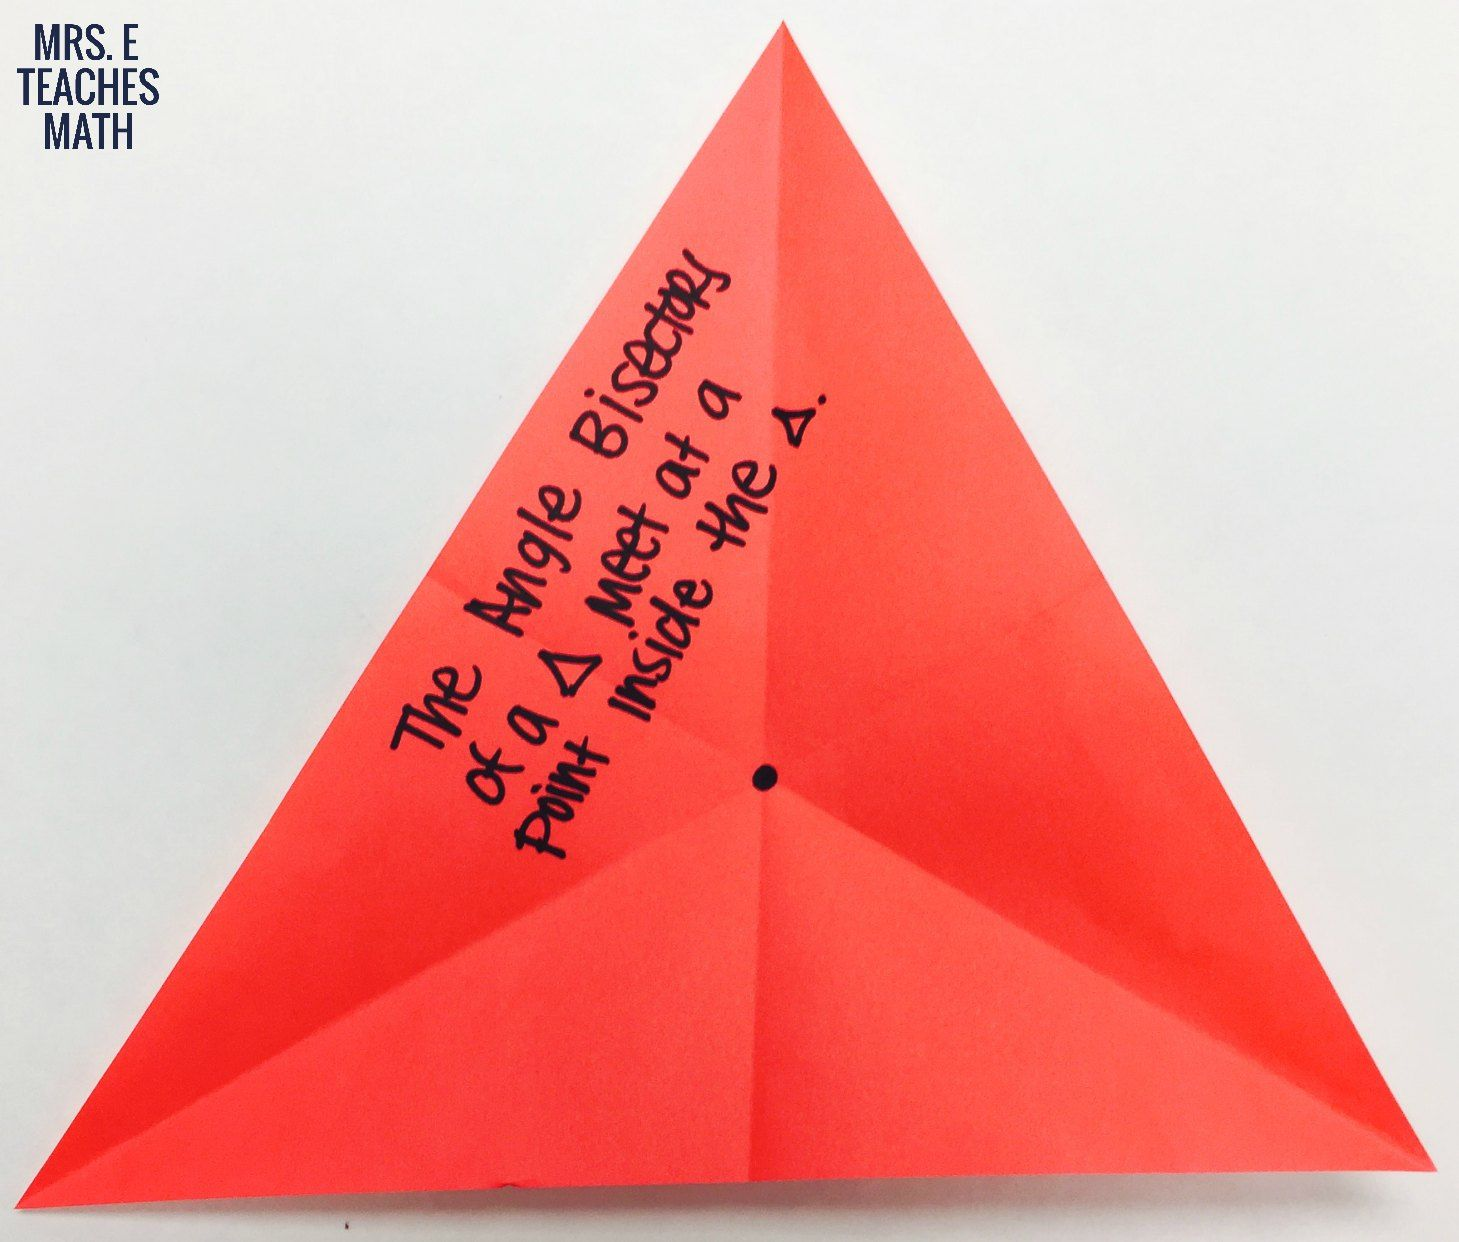 Altitudes And Angle Bisectors Paper Folding Activity